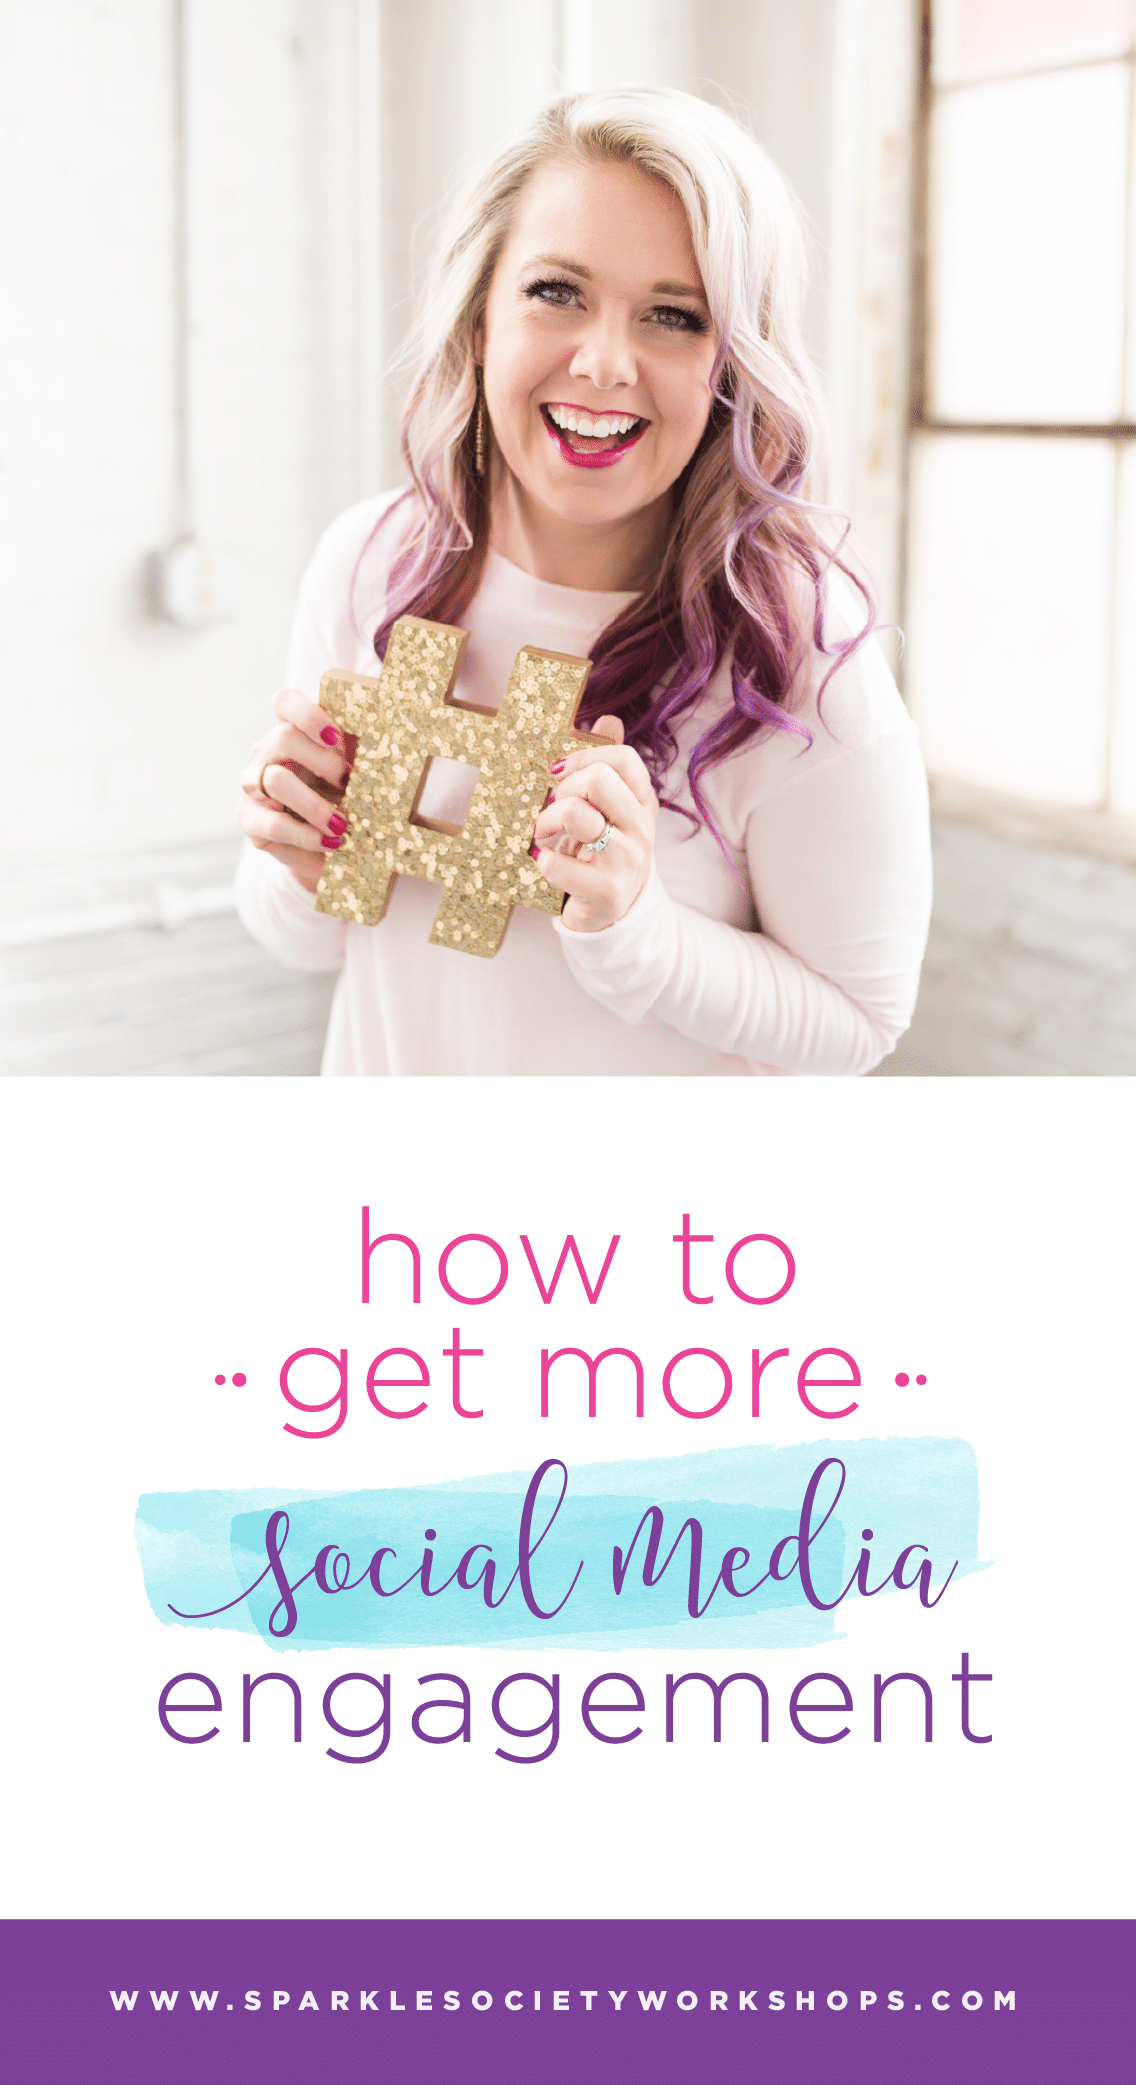 Don't worry, I got you! Getting social engagement doesn't come easy, but it can be done! Get my #1 tip on boosting engagement without selling your soul. #sparkleblog #sparklesociety @sparklesocietyworkshops